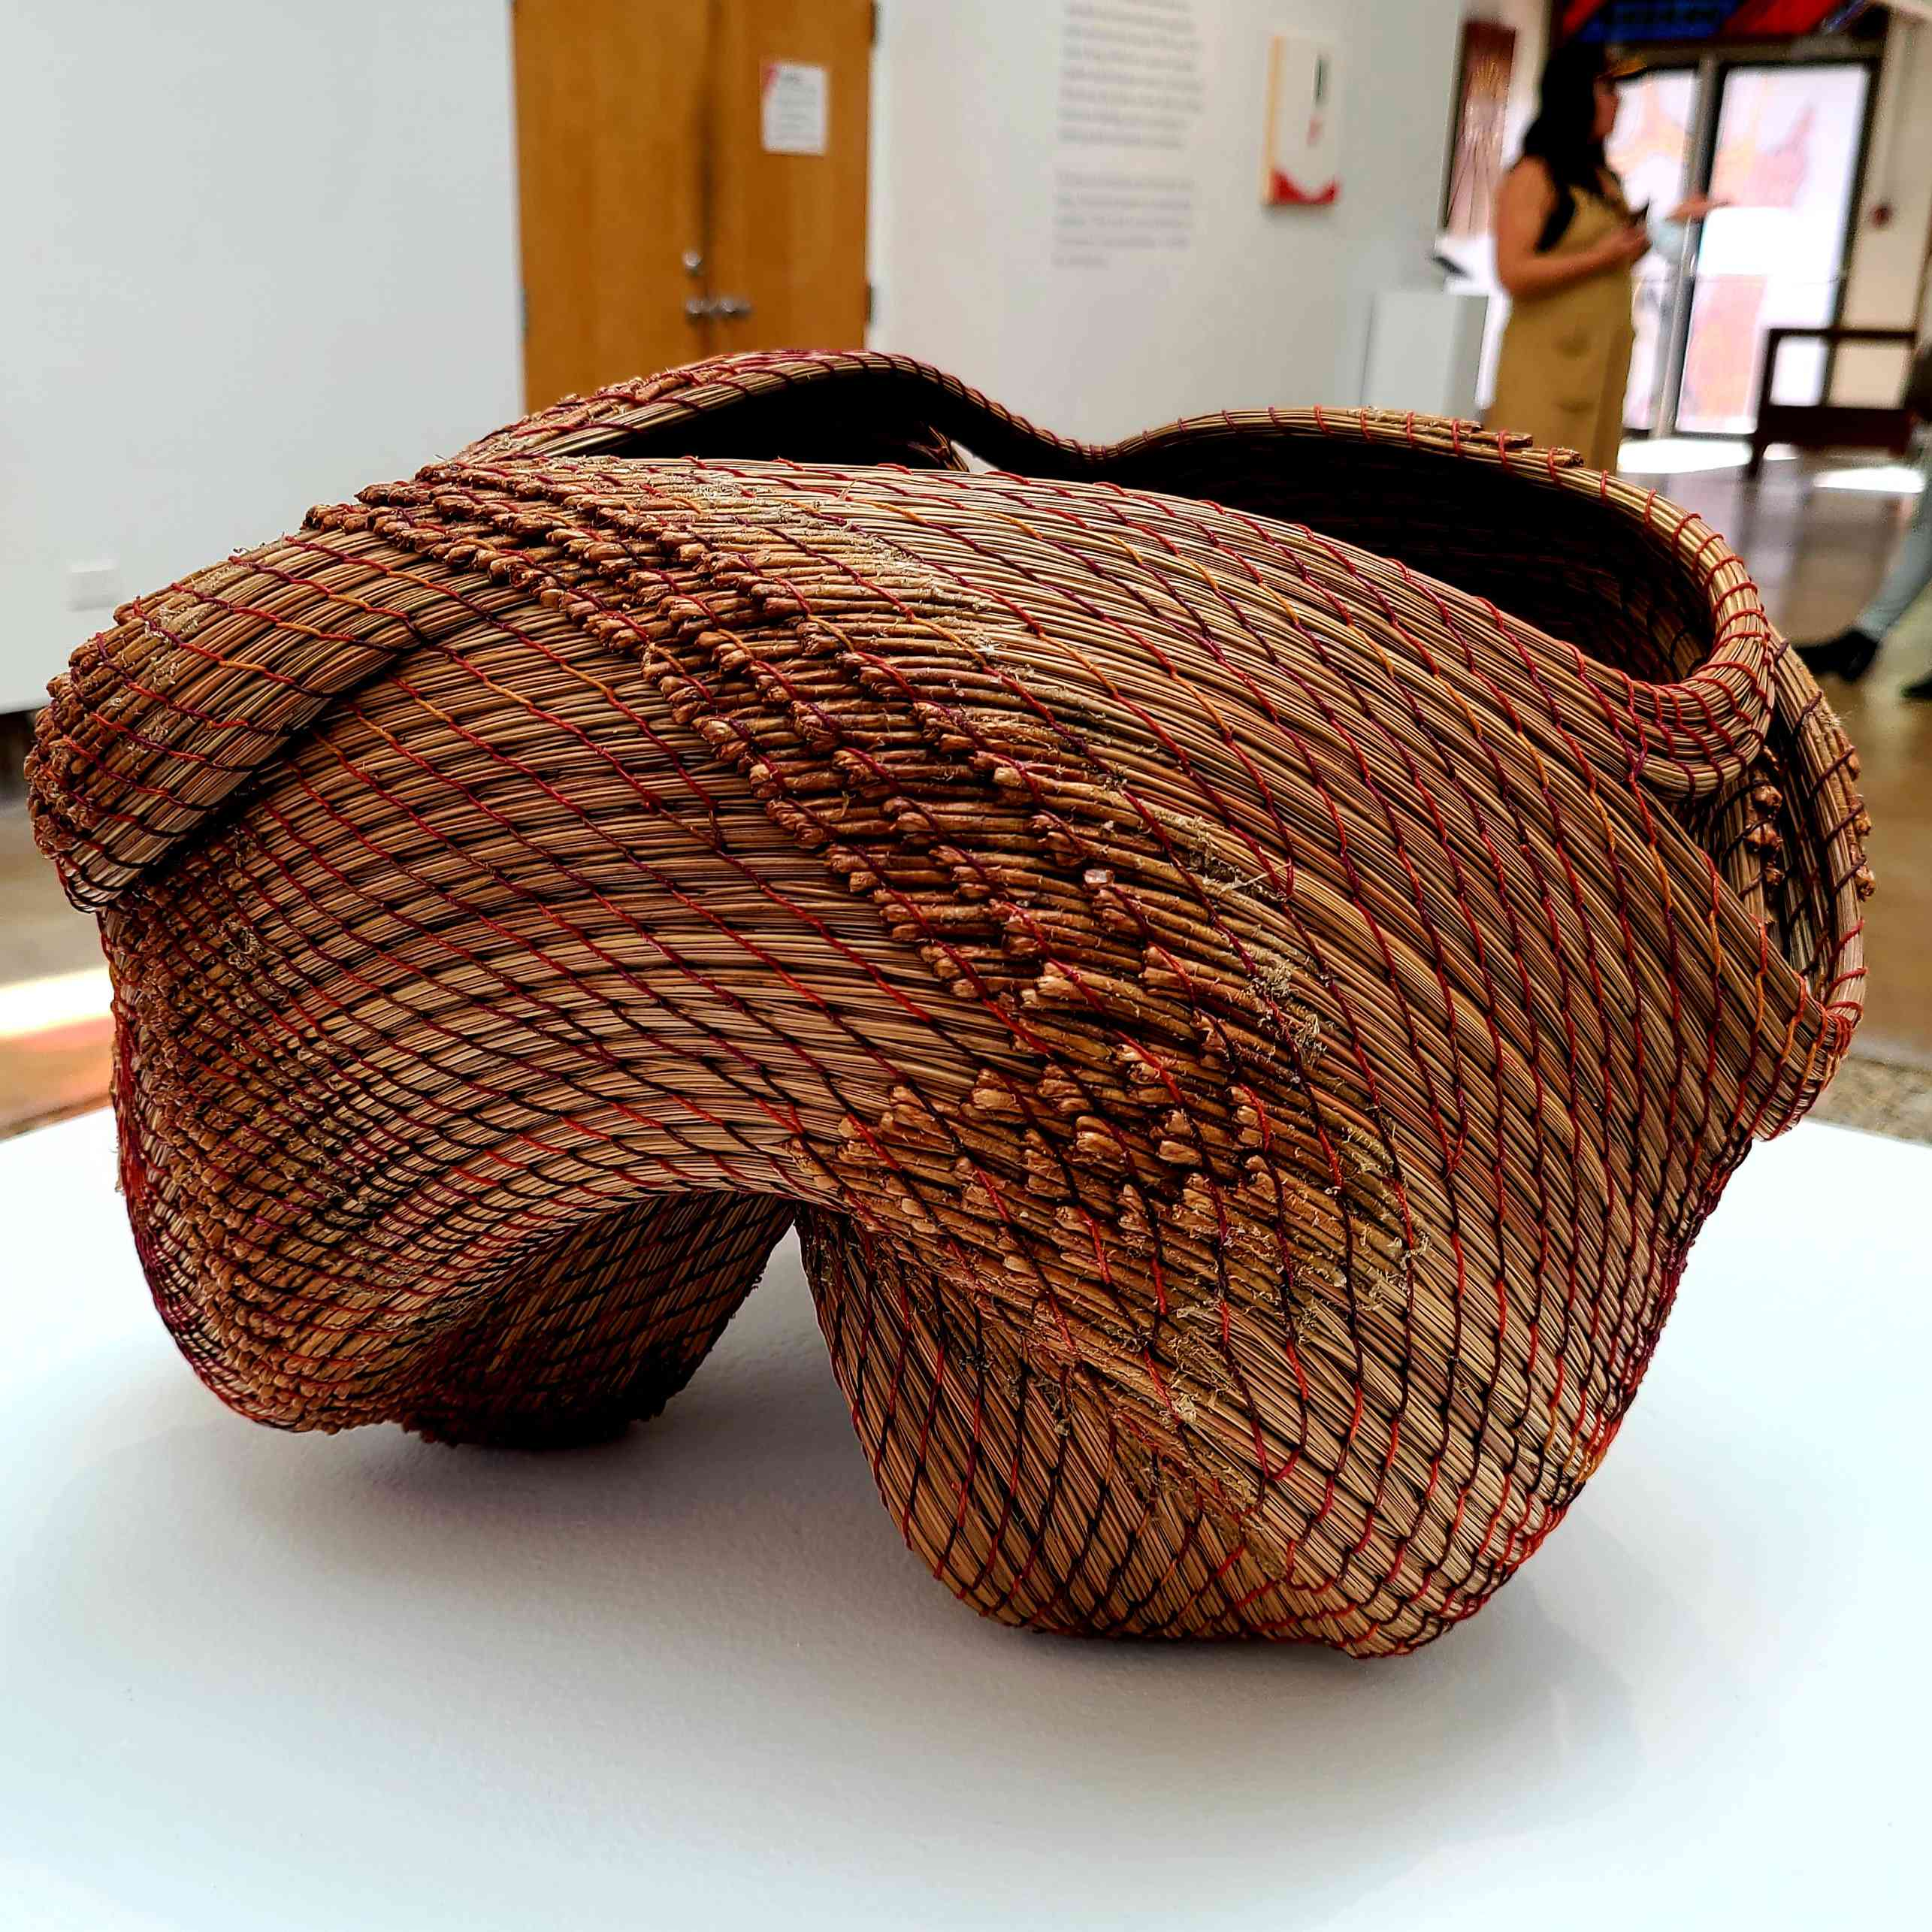 A complex basket created by artists at Arrowmont in Gatlinburg, Tennessee